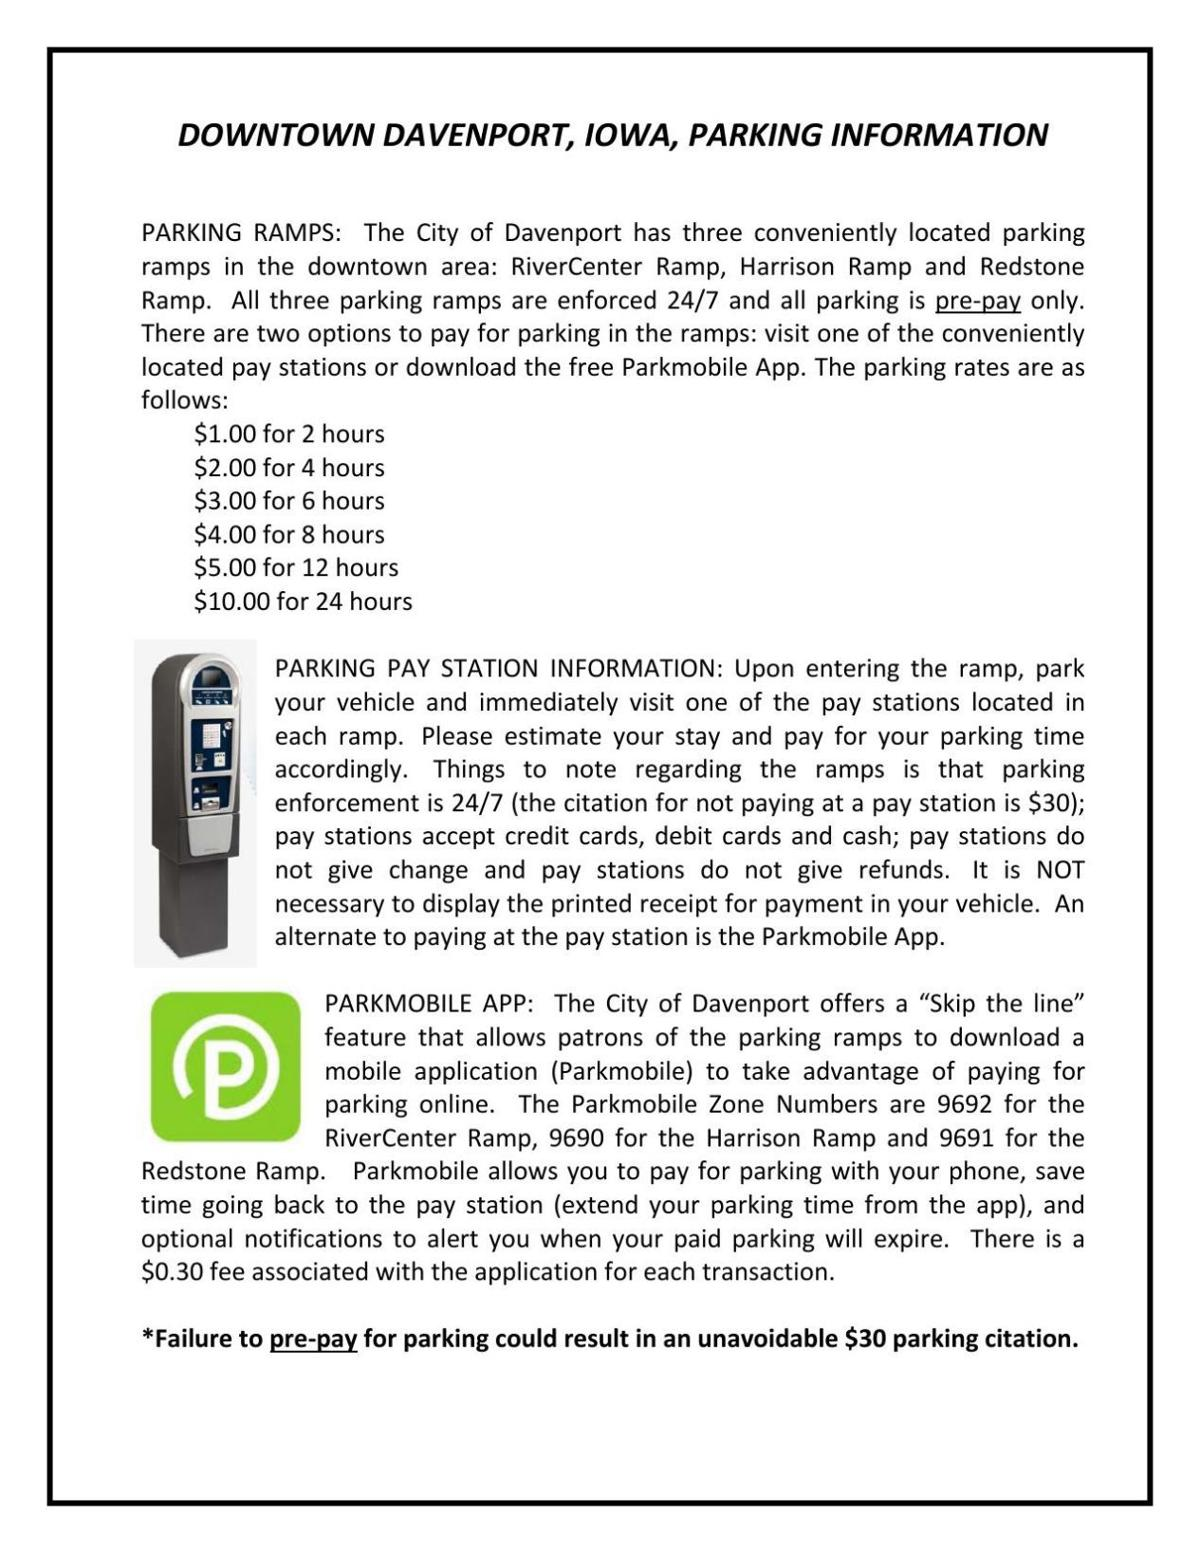 Downtown Davenport Parking Information